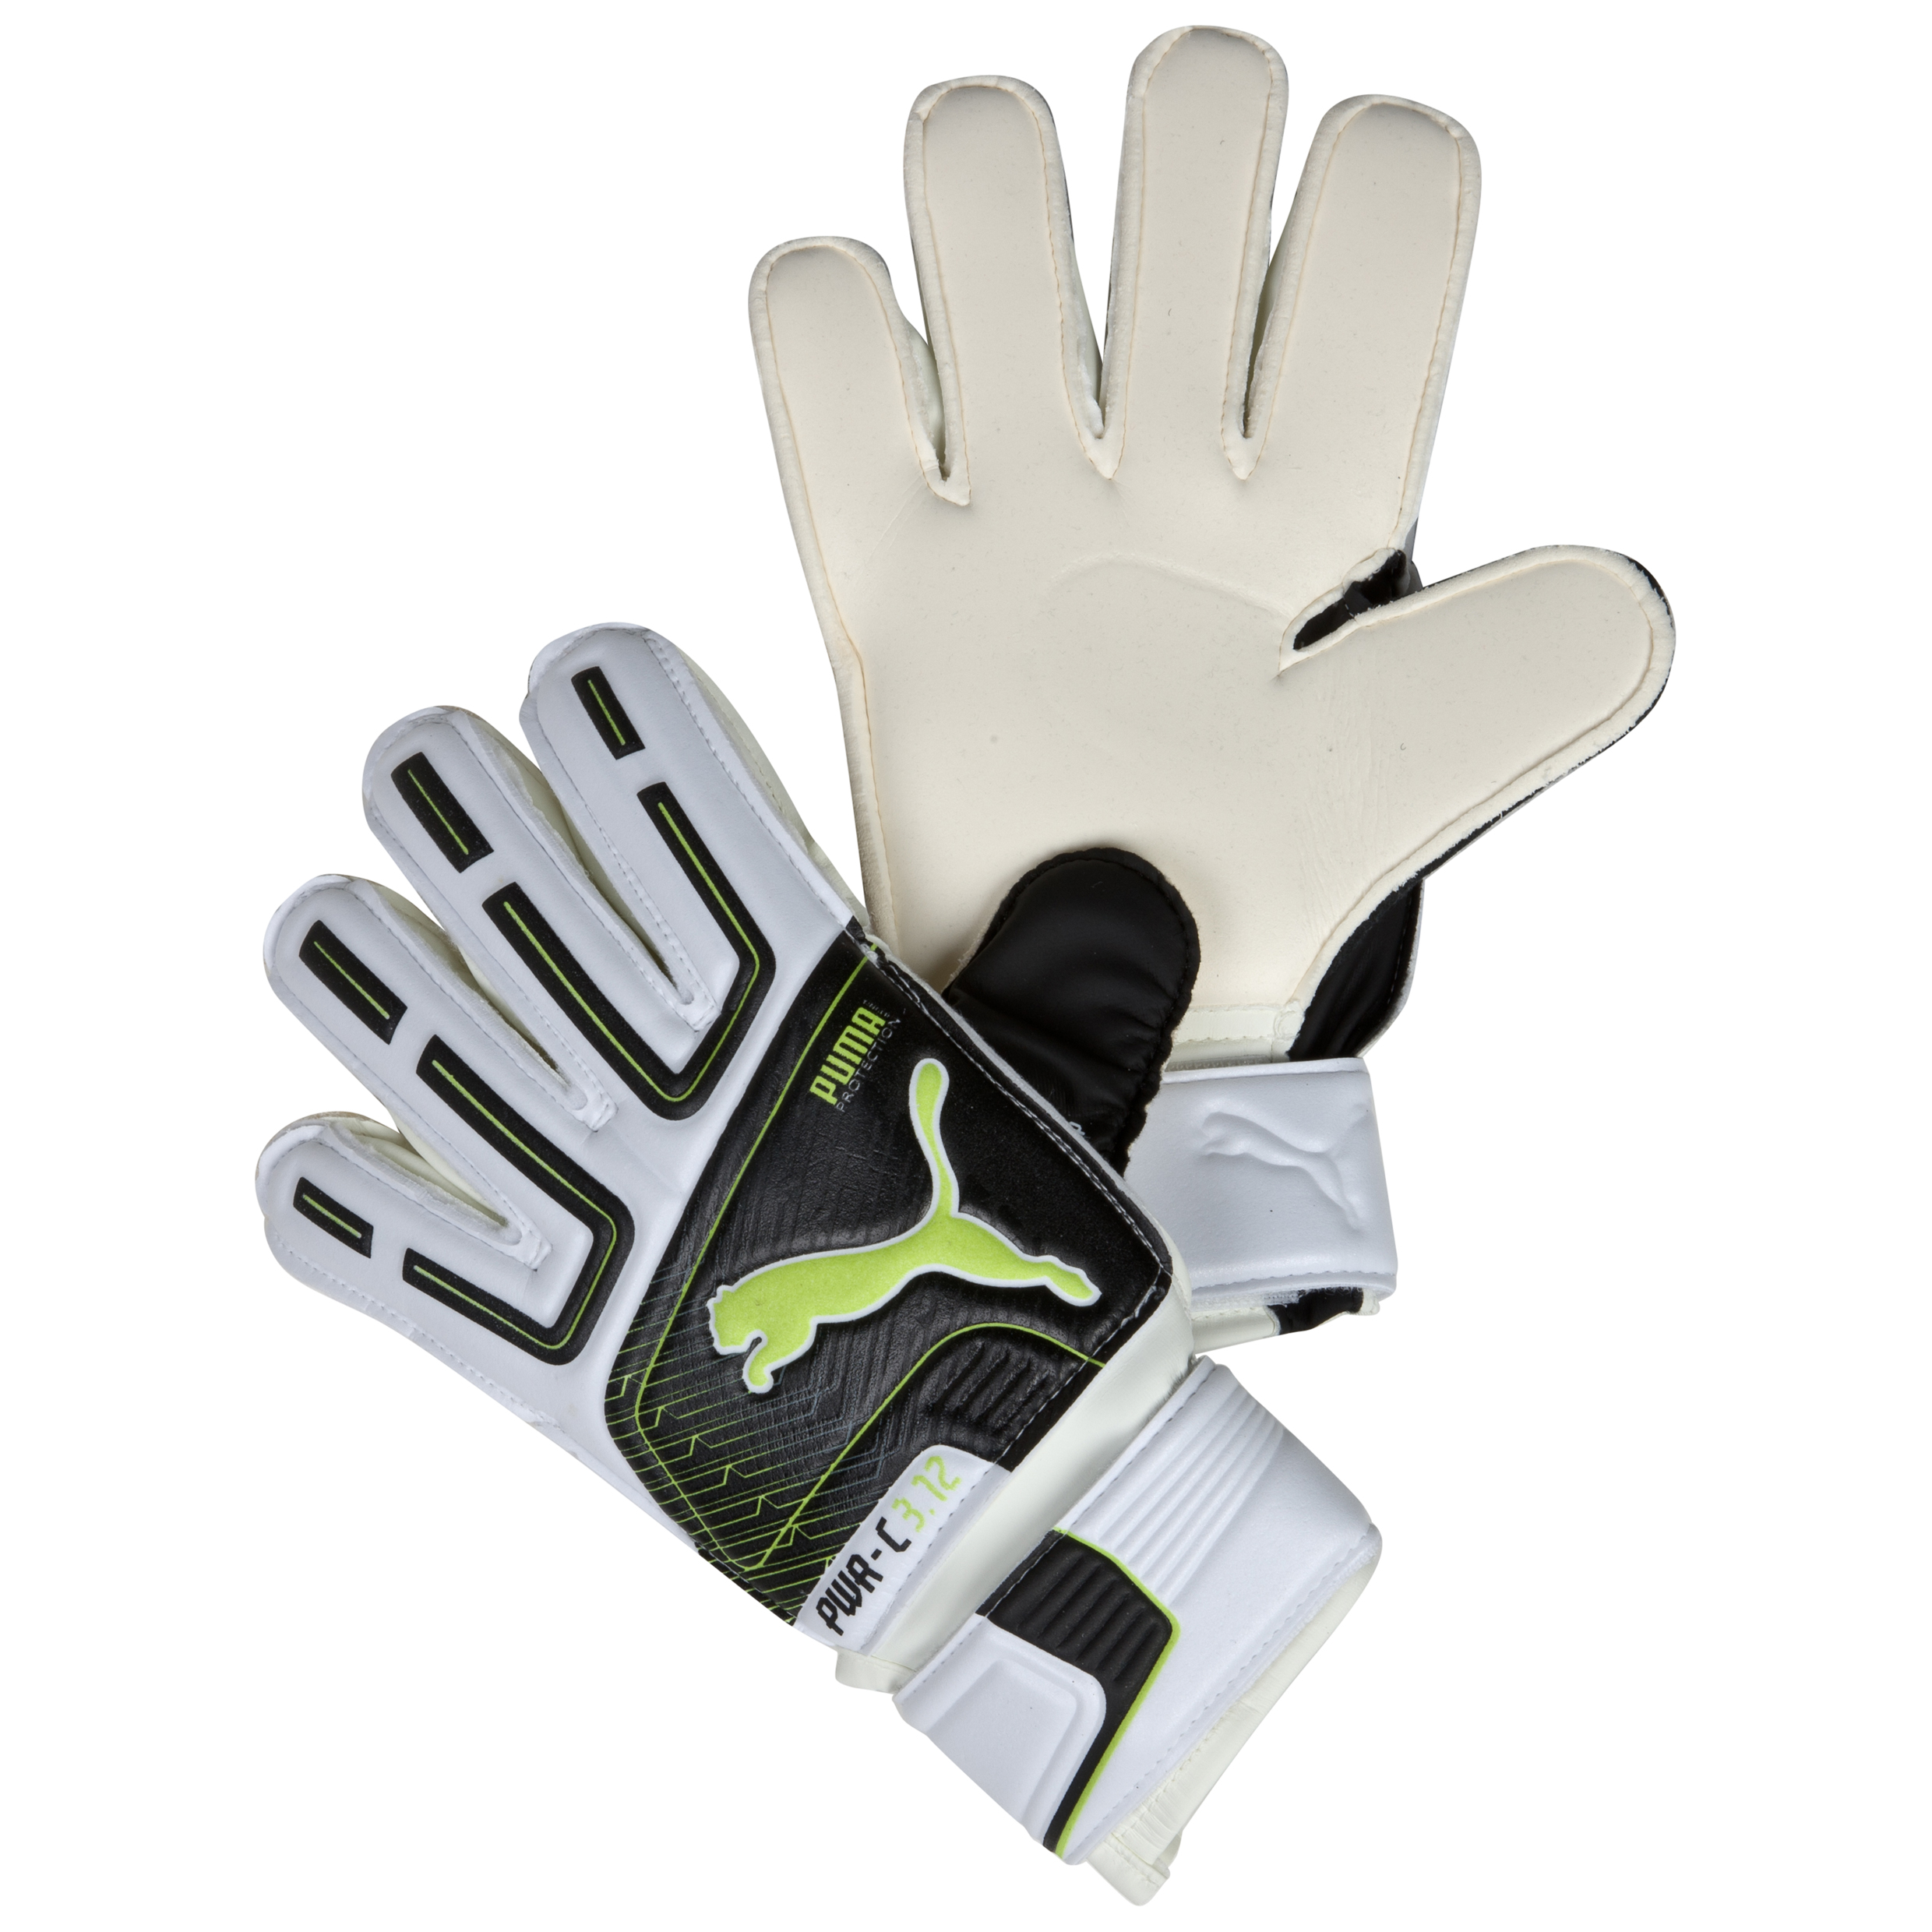 Puma PowerCat 3.12 Protect Junior Goalkeeper Gloves - White/Black/Lime Punch/Dark Shadow